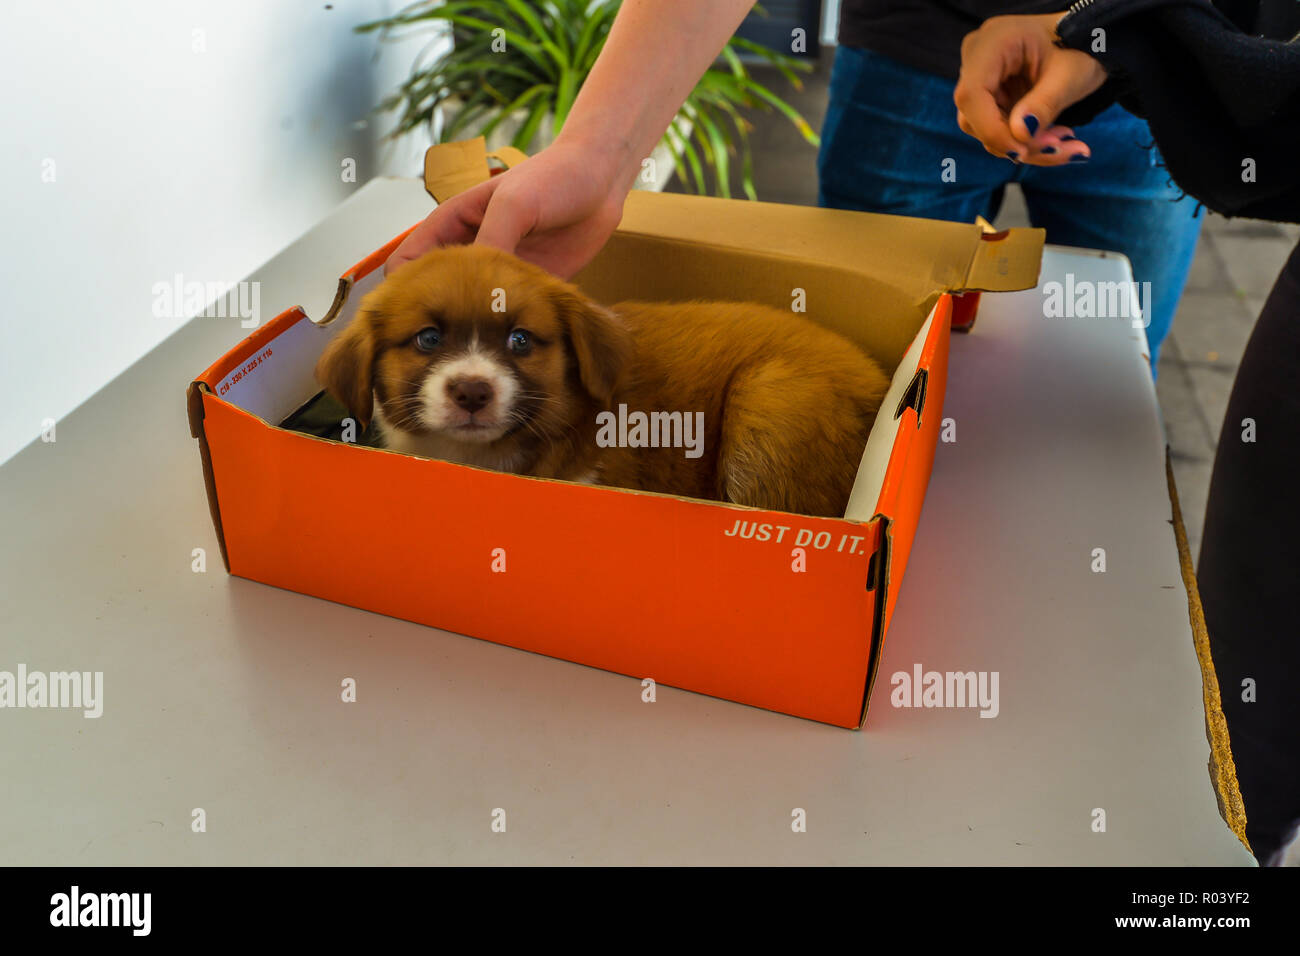 Maderia/Portugal - 10/12/18 - A young puppy sitting in a box - Stock Image